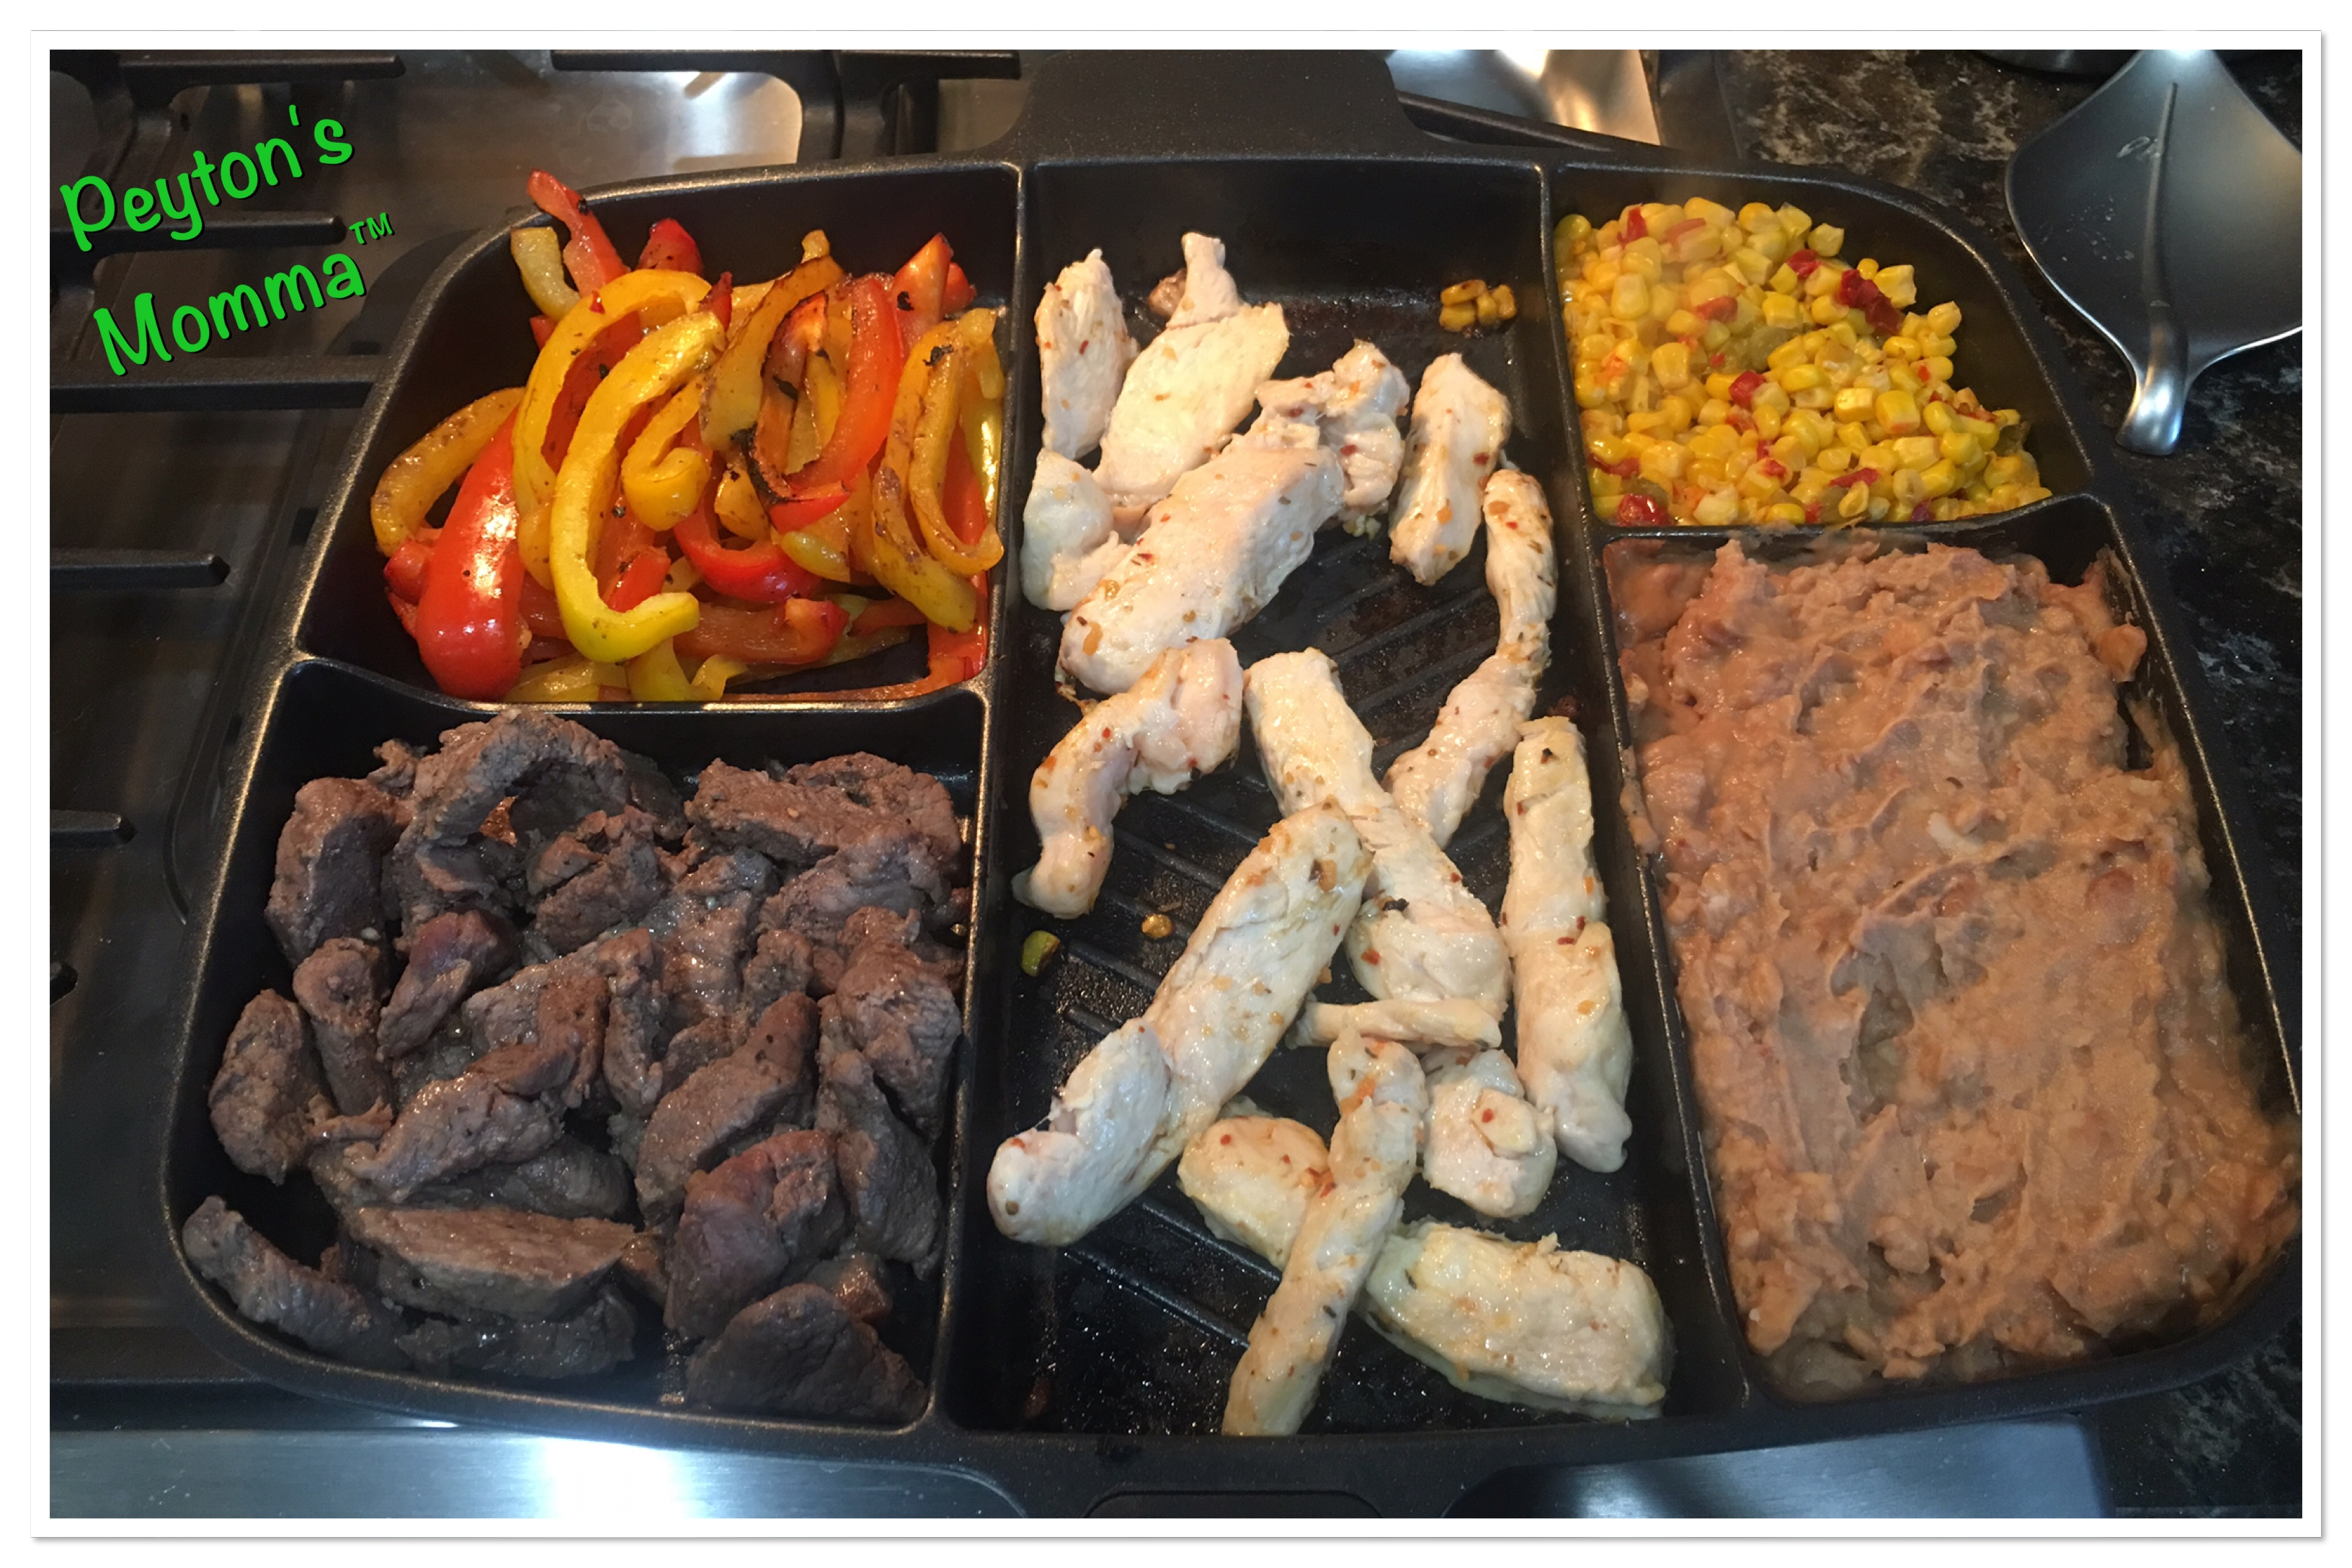 Chicken and Steak Fajitas in the MasterPan